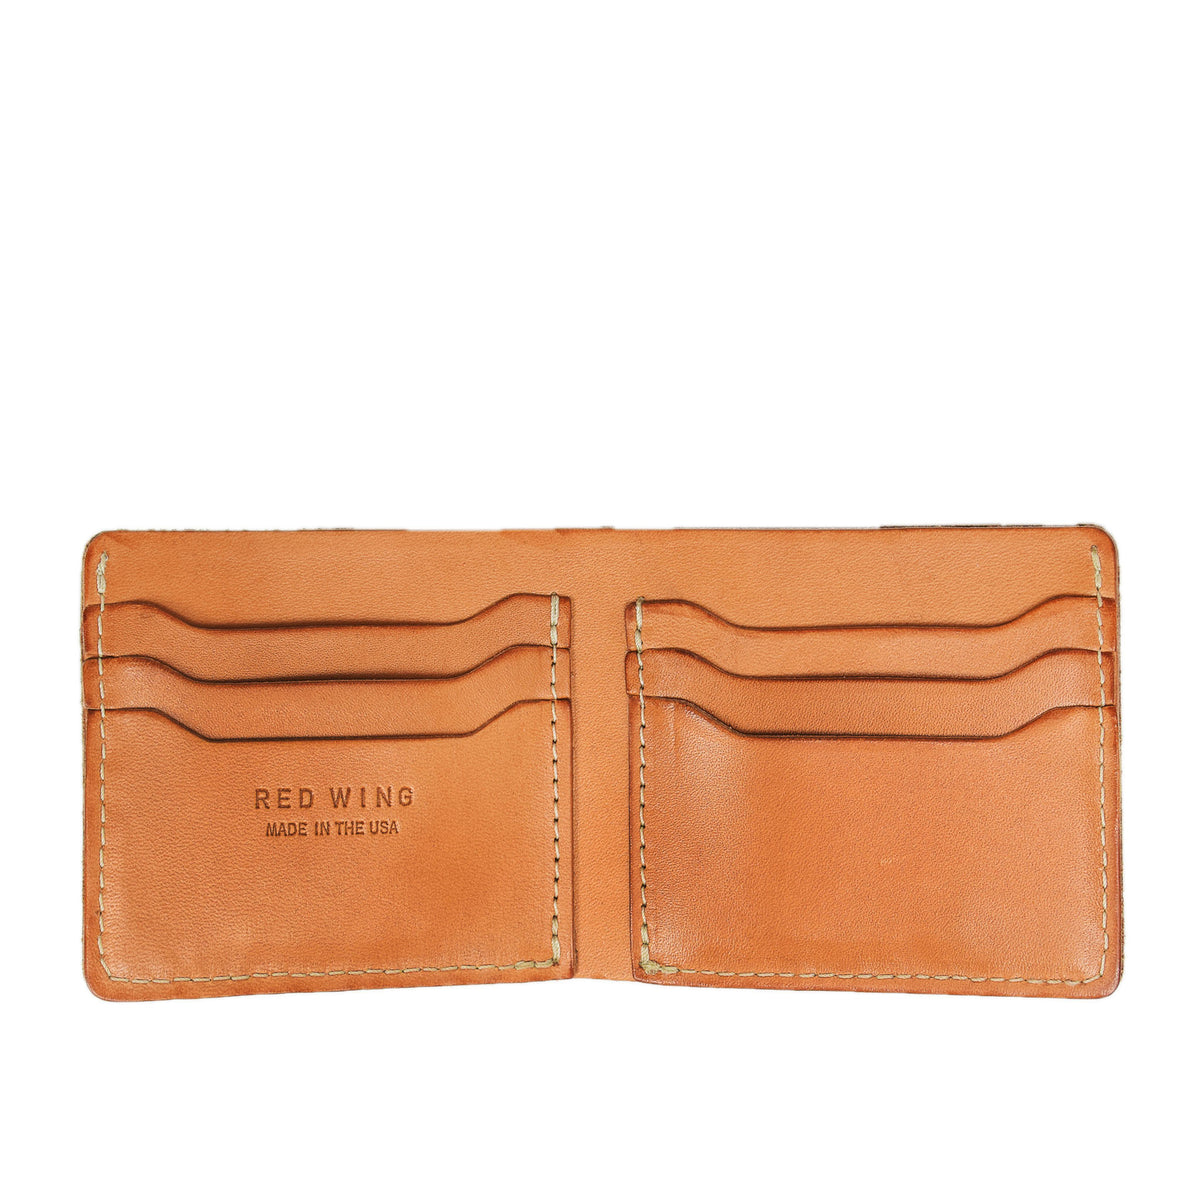 Red Wing Veg Tan Leather Classic Bifold Wallet Made in USA inside